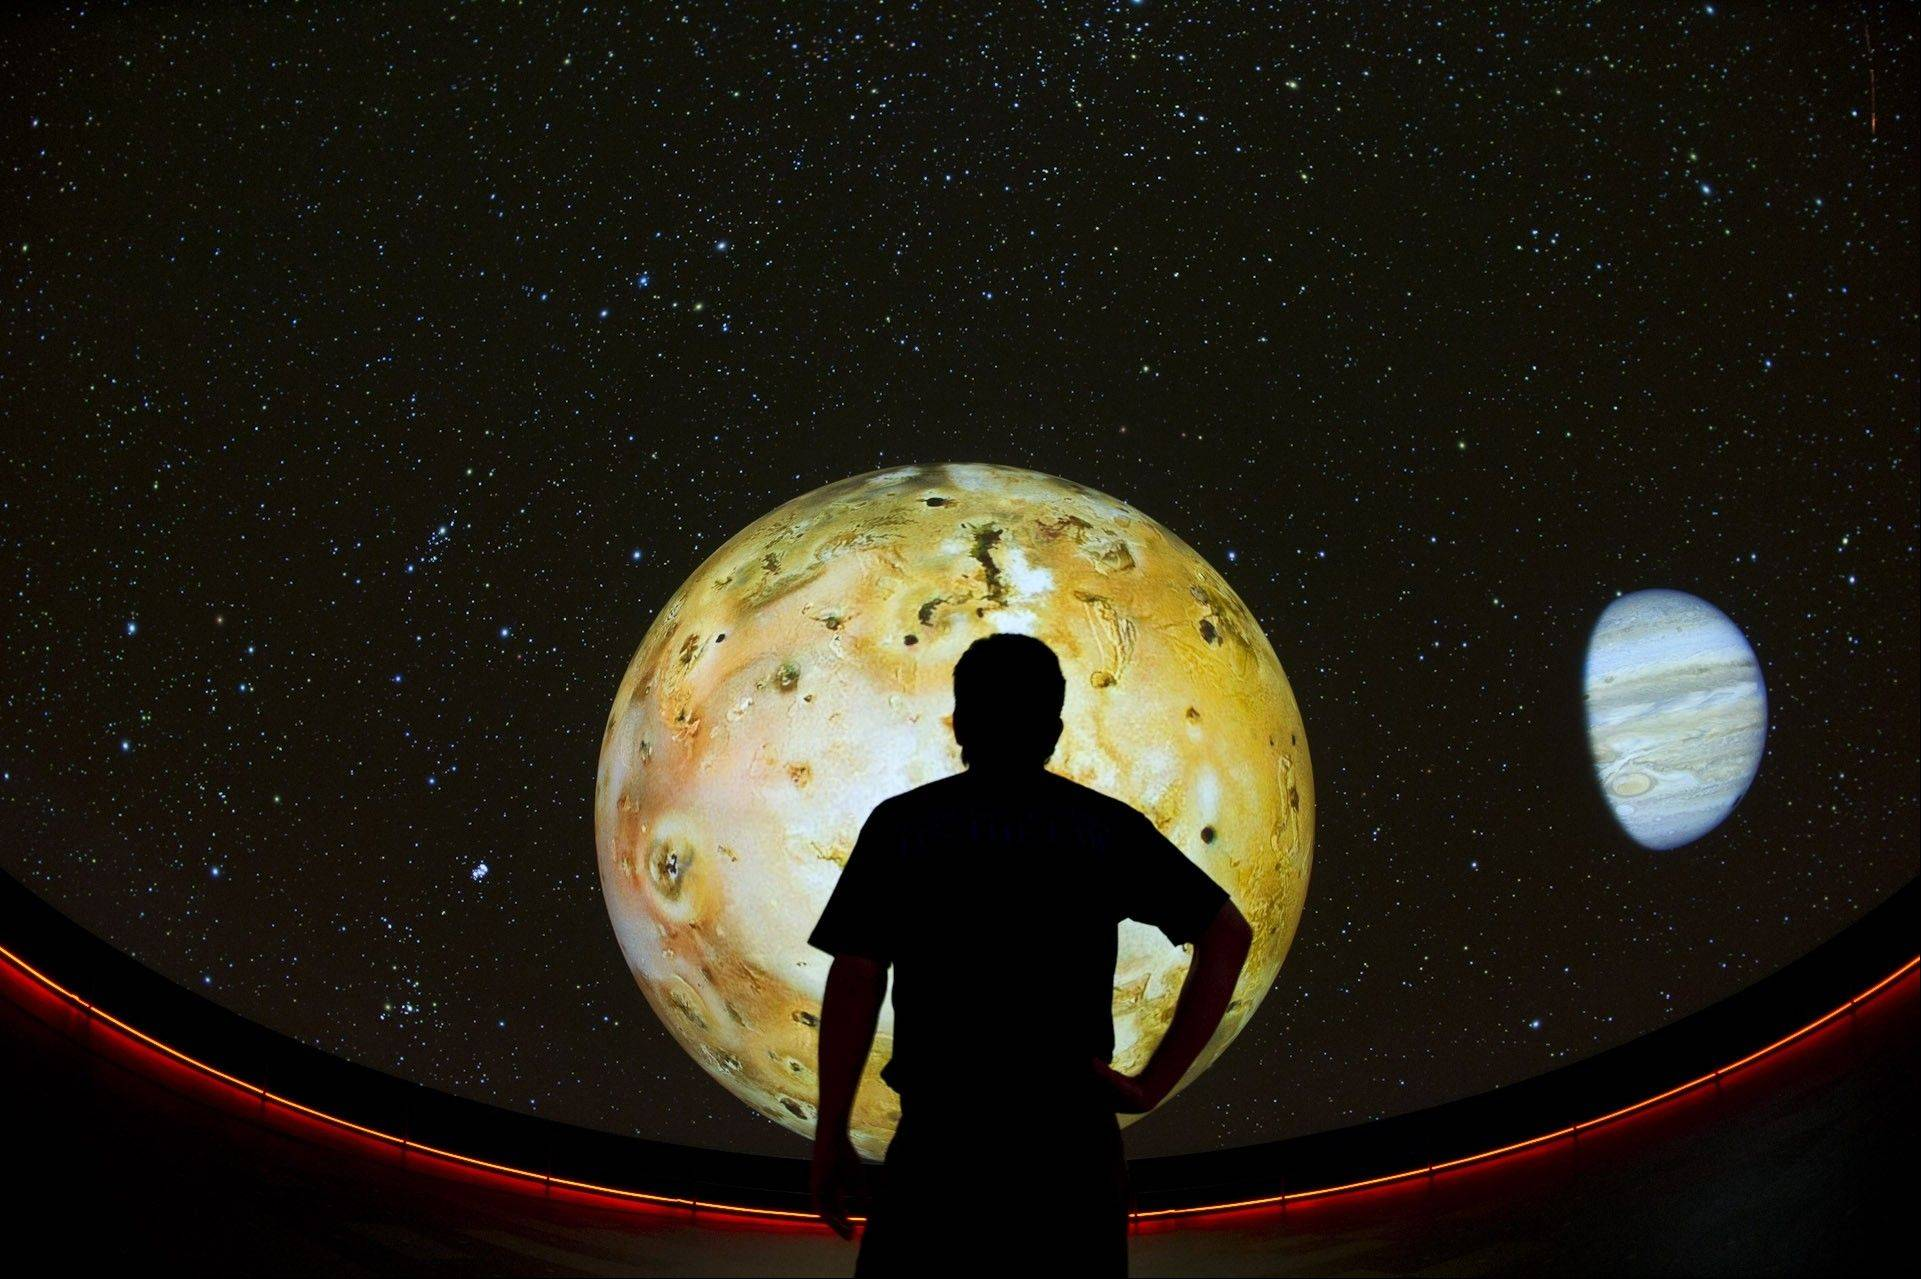 Jupiter's moon Io is projected on the ultra high-definition screen in Adler's Grainger Sky Theater.